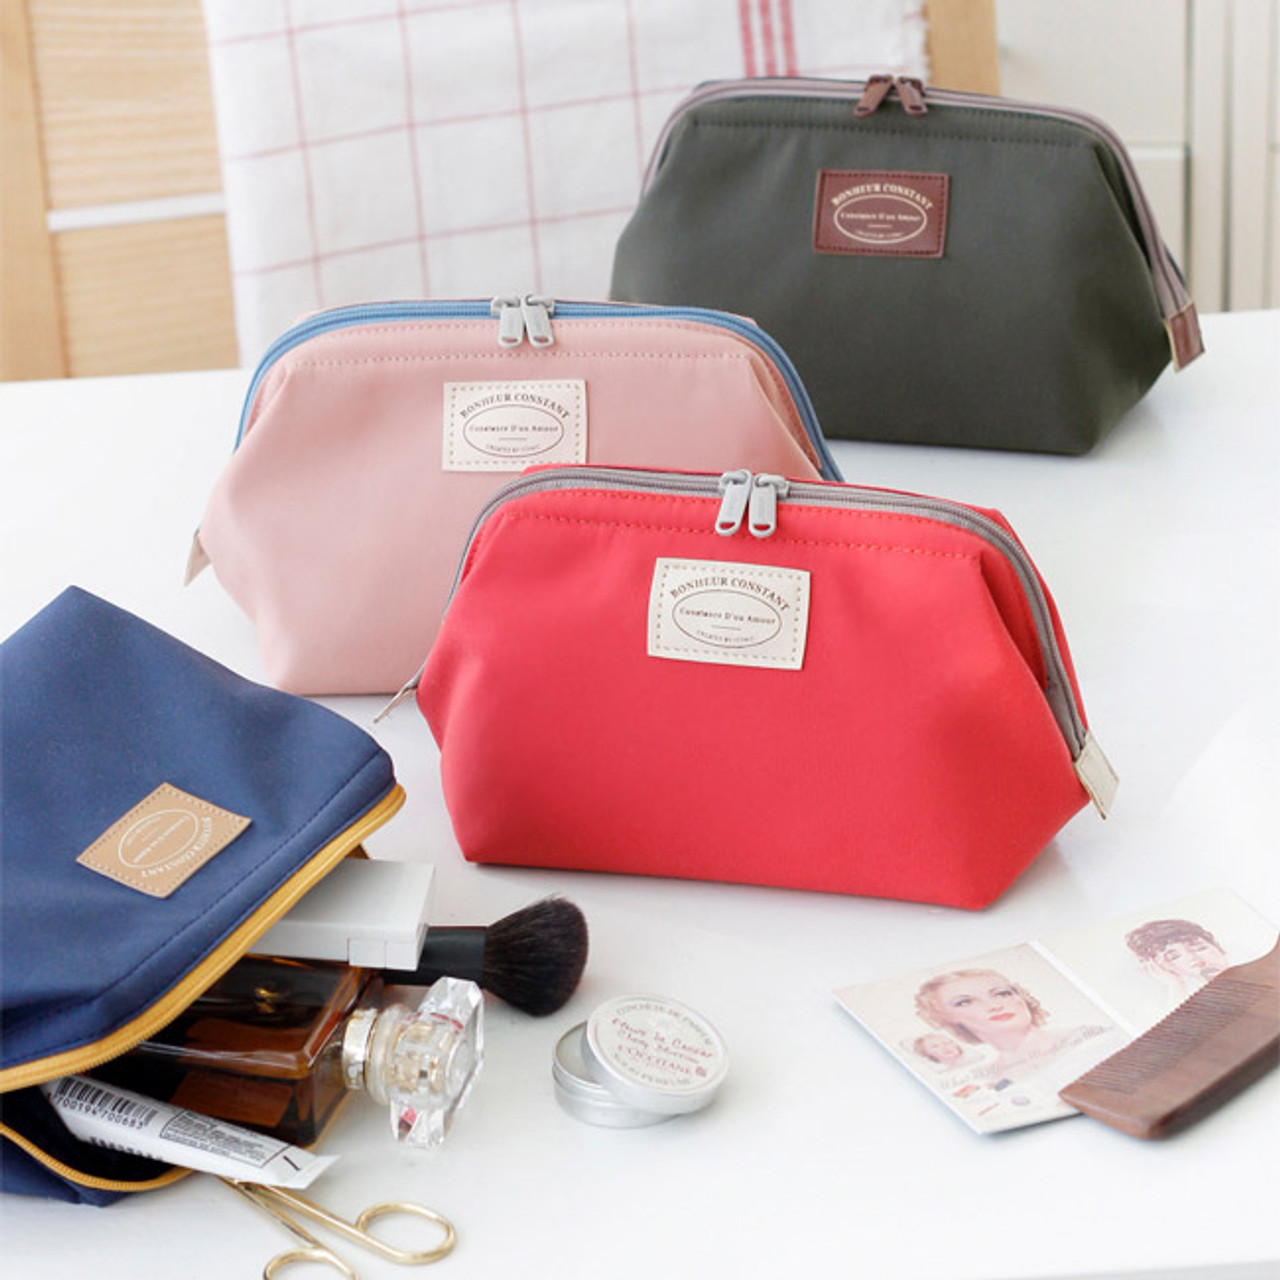 Home · Iconic Multi double zipper frame pouch cosmetic bag · Multi double  zipper frame pouch 8e3772bdc2cc9